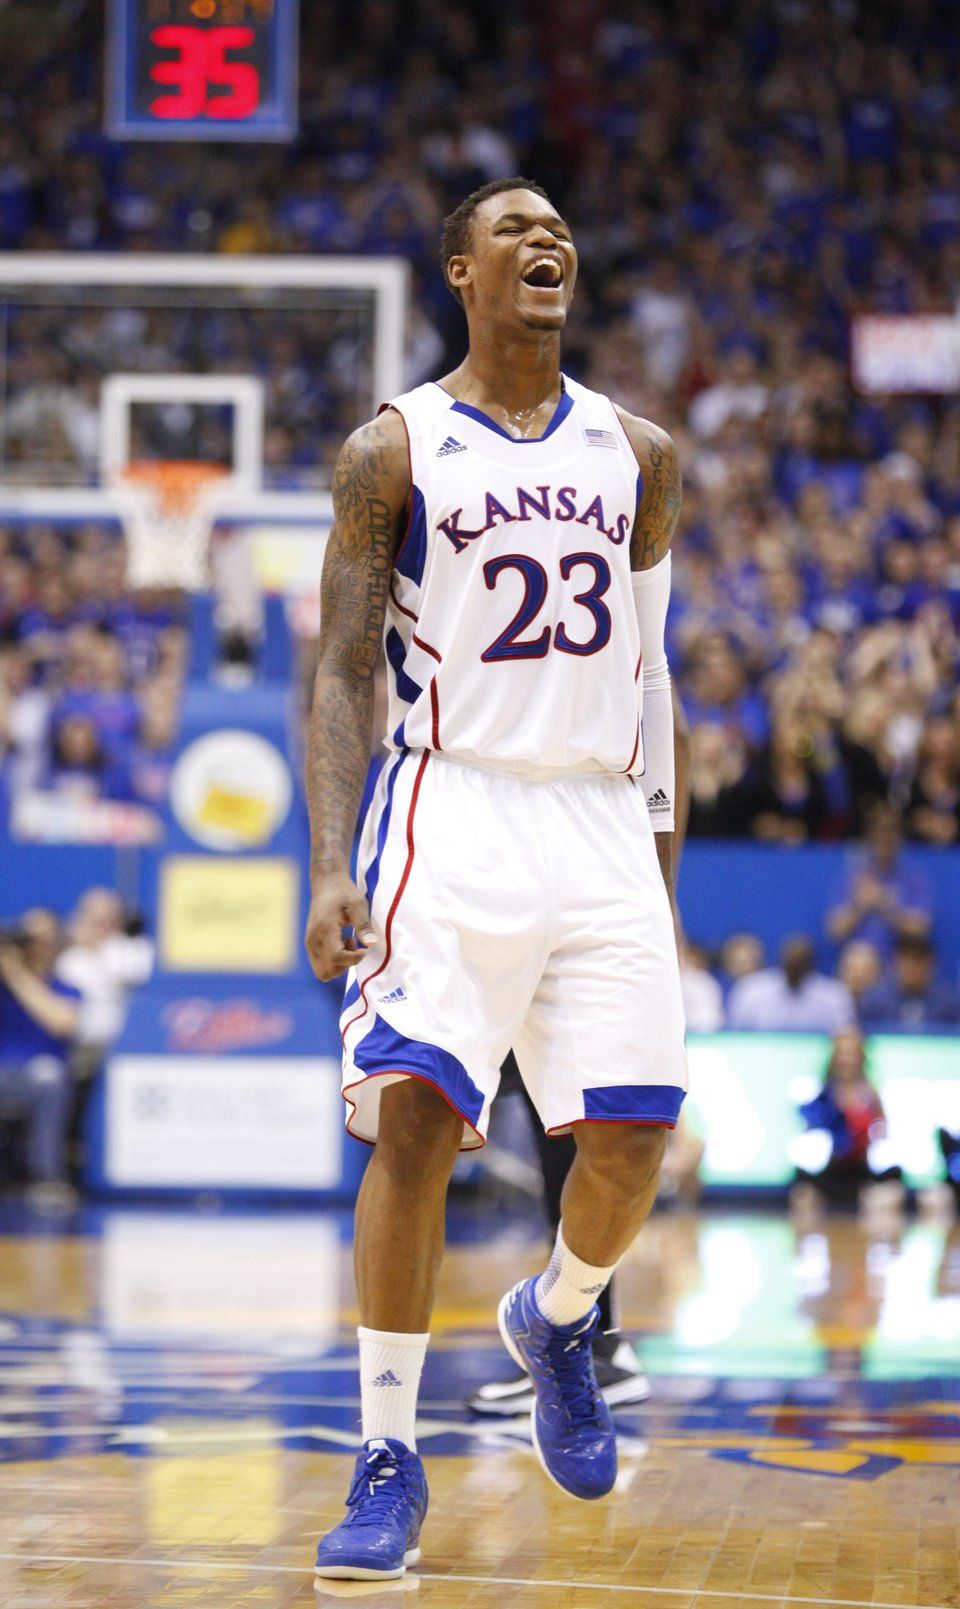 Kansas guard Ben McLemore gets excited after a forced turnover ...